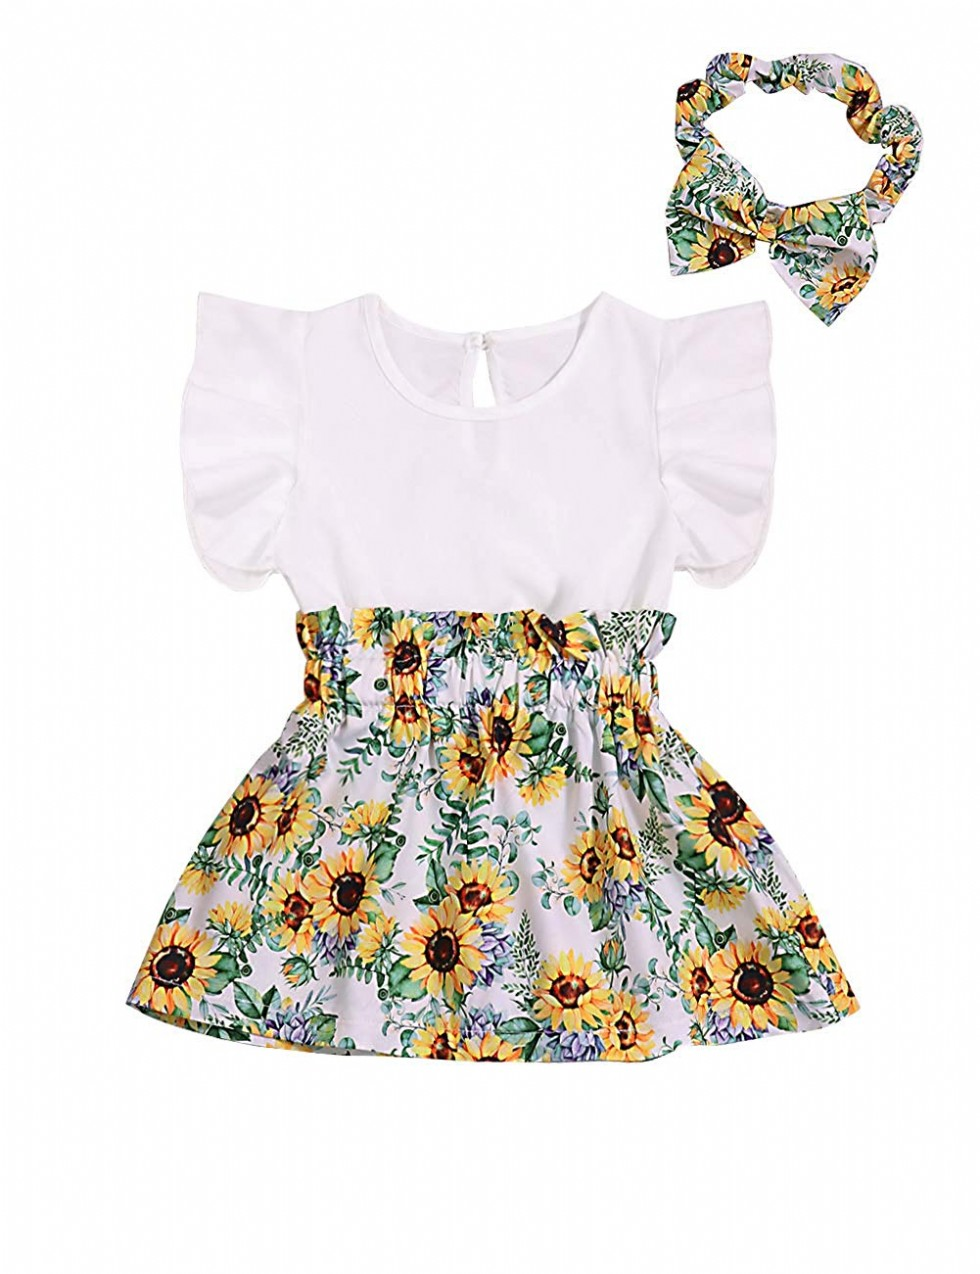 Baby Girl Clothes Ruffle Sleeveless Summer Princess Tutu Sunflower Skirt with Headband Dress Set